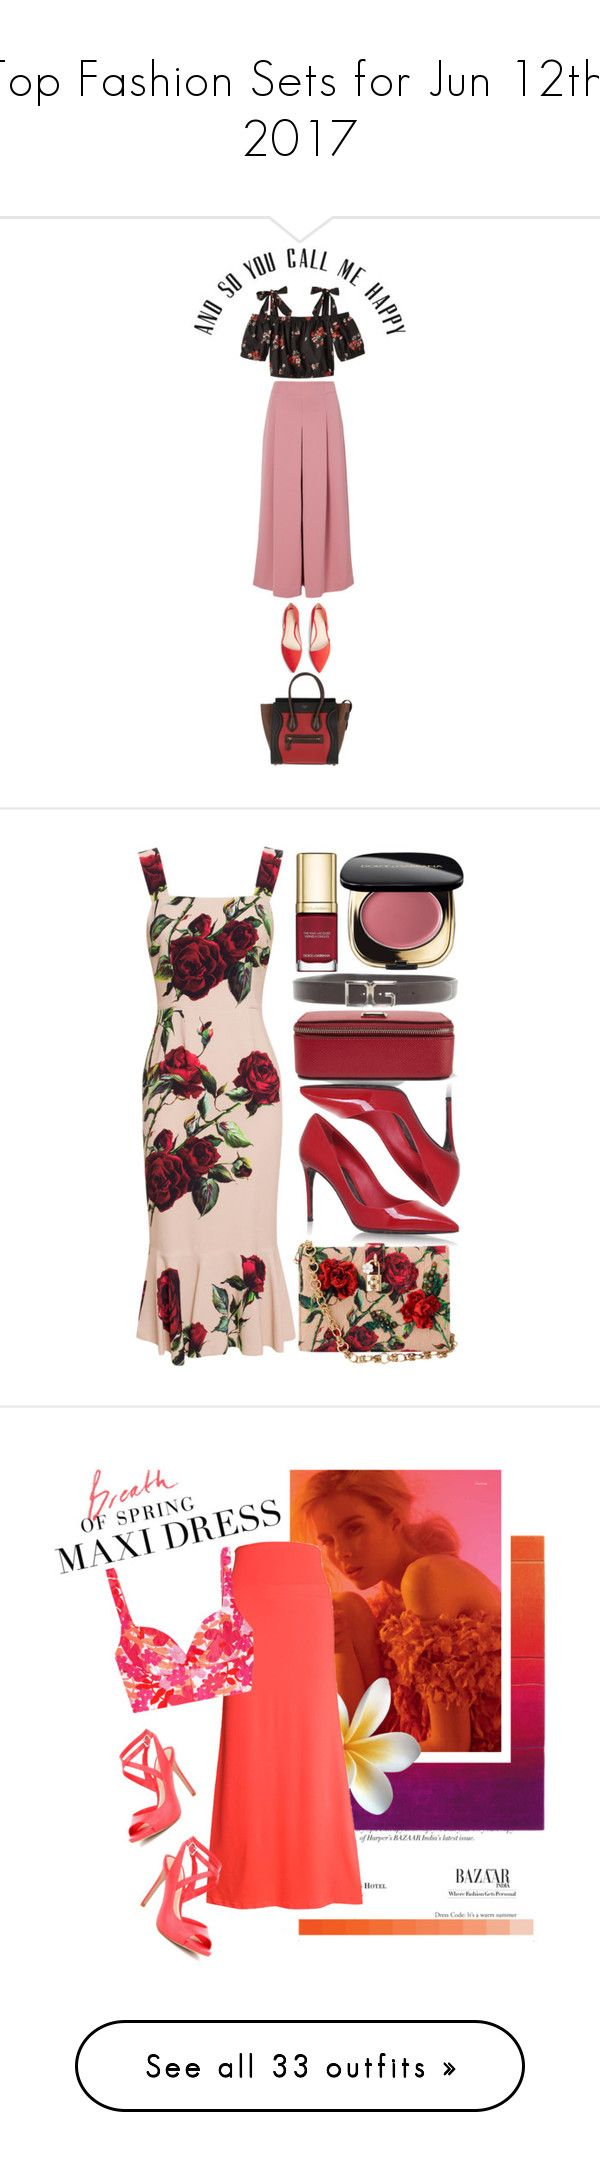 """Top Fashion Sets for Jun 12th, 2017"" by polyvore ❤ liked on Polyvore featuring TIBI, MANGO, CÉLINE, Dolce&Gabbana, Dynamic Rugs, WithChic, Michael Kors, Gianni Bini, Esme Vie and Etro"